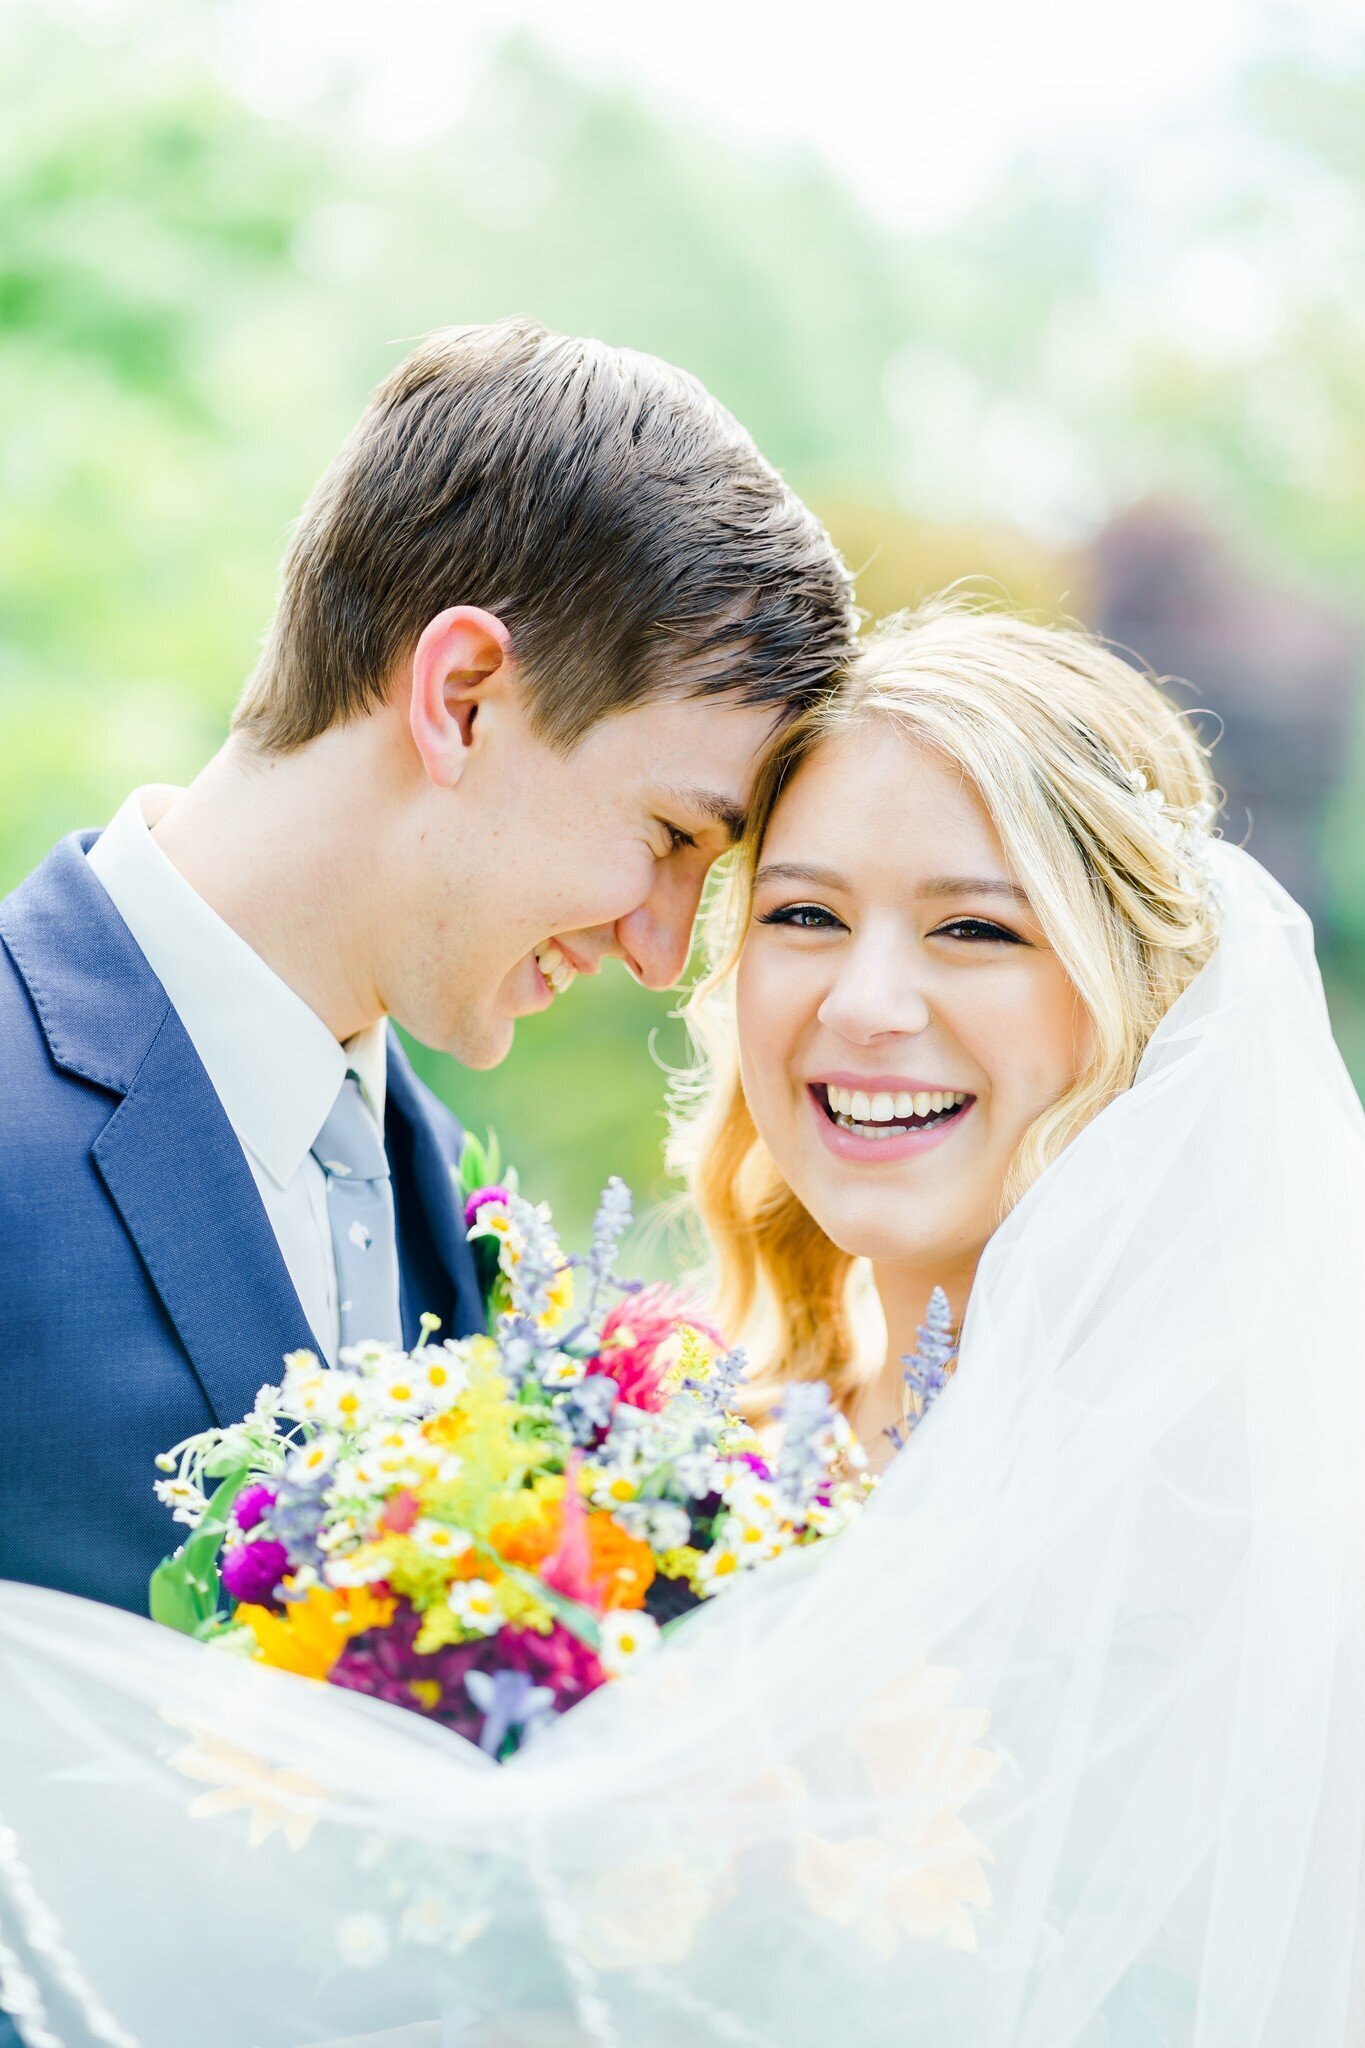 Bride and groom laughing with colorful bouquet